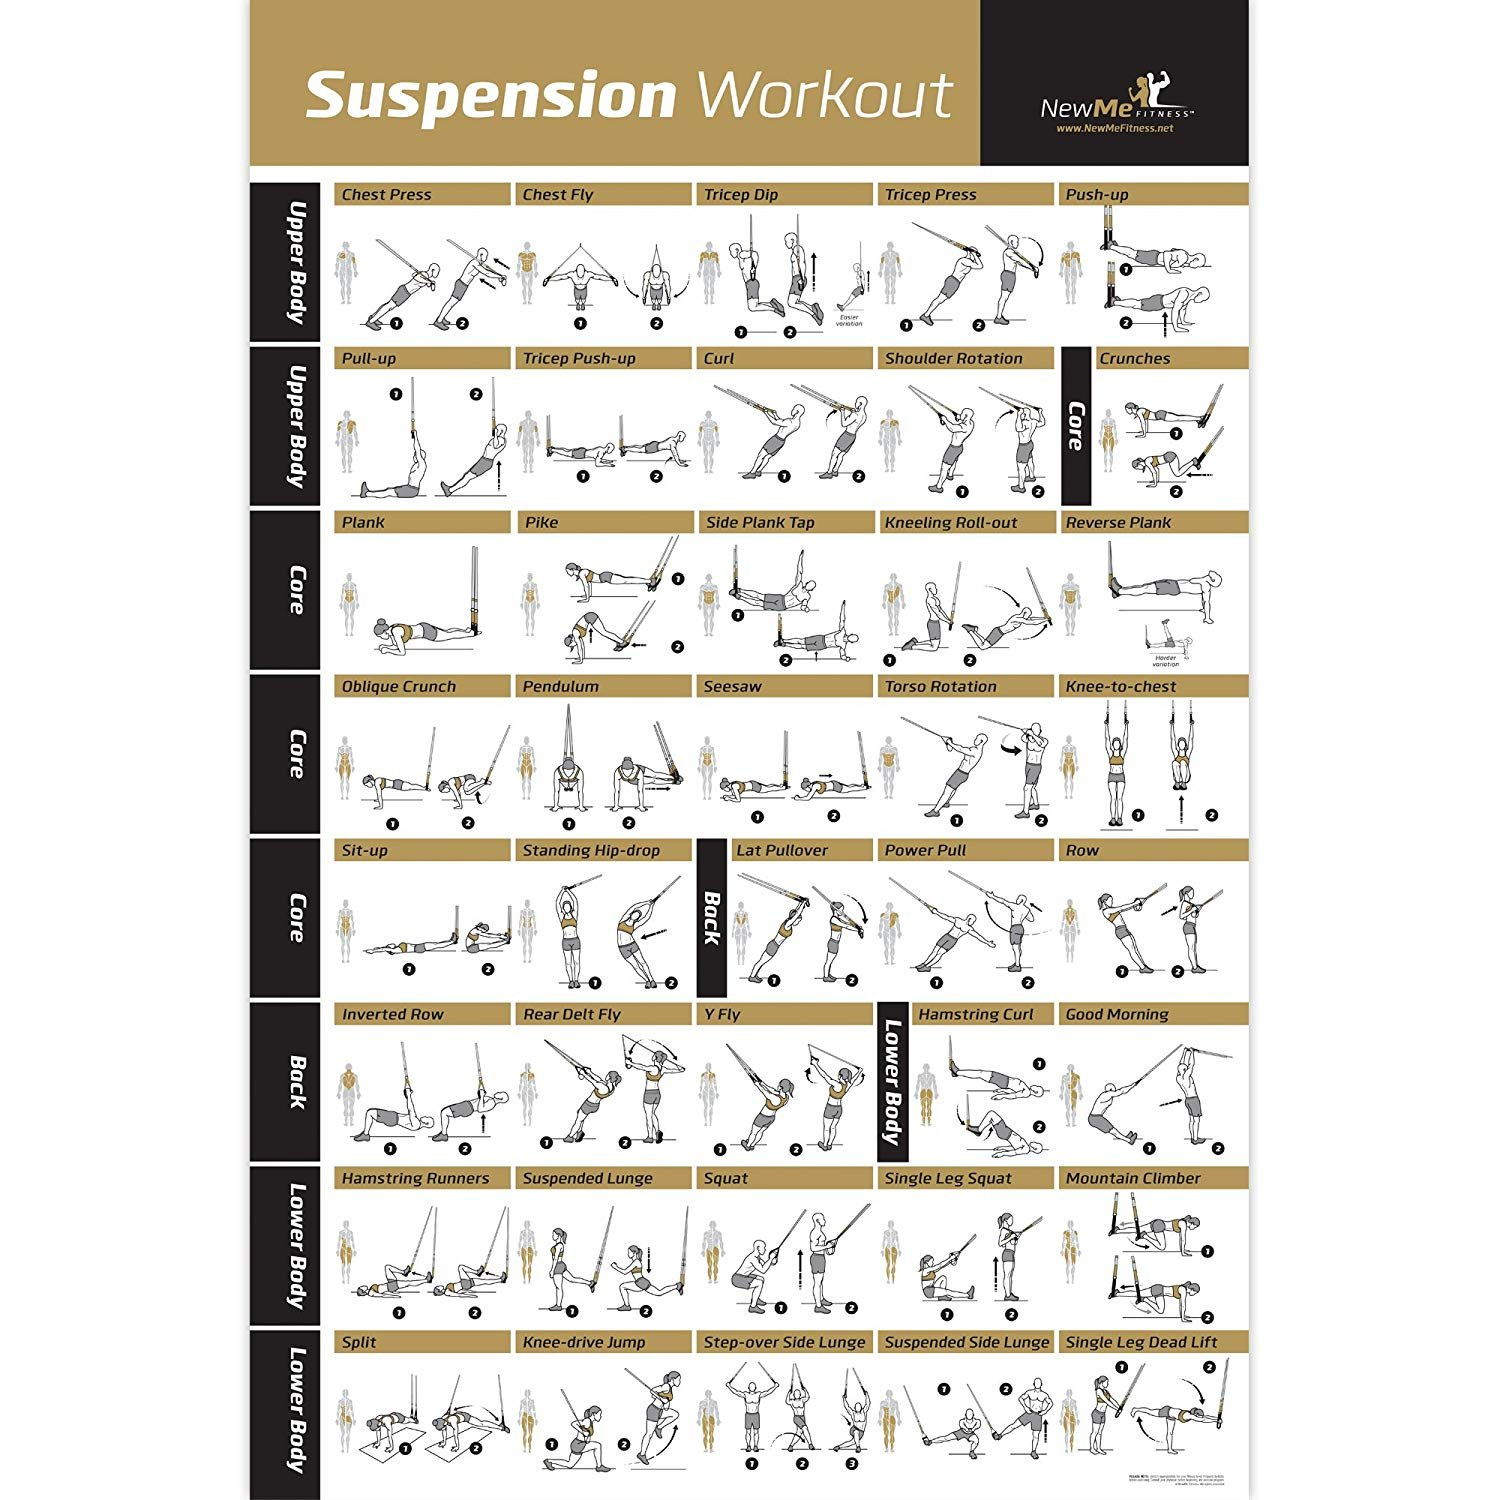 photograph relating to Trx Workout Plan Printable called Suspension Fitness Poster Laminated - Electrical power Exercising Chart - Establish Muscle mass, Tone Tighten - Dwelling Health club Resistance Exercise routine Timetable - Exercise Advisor -